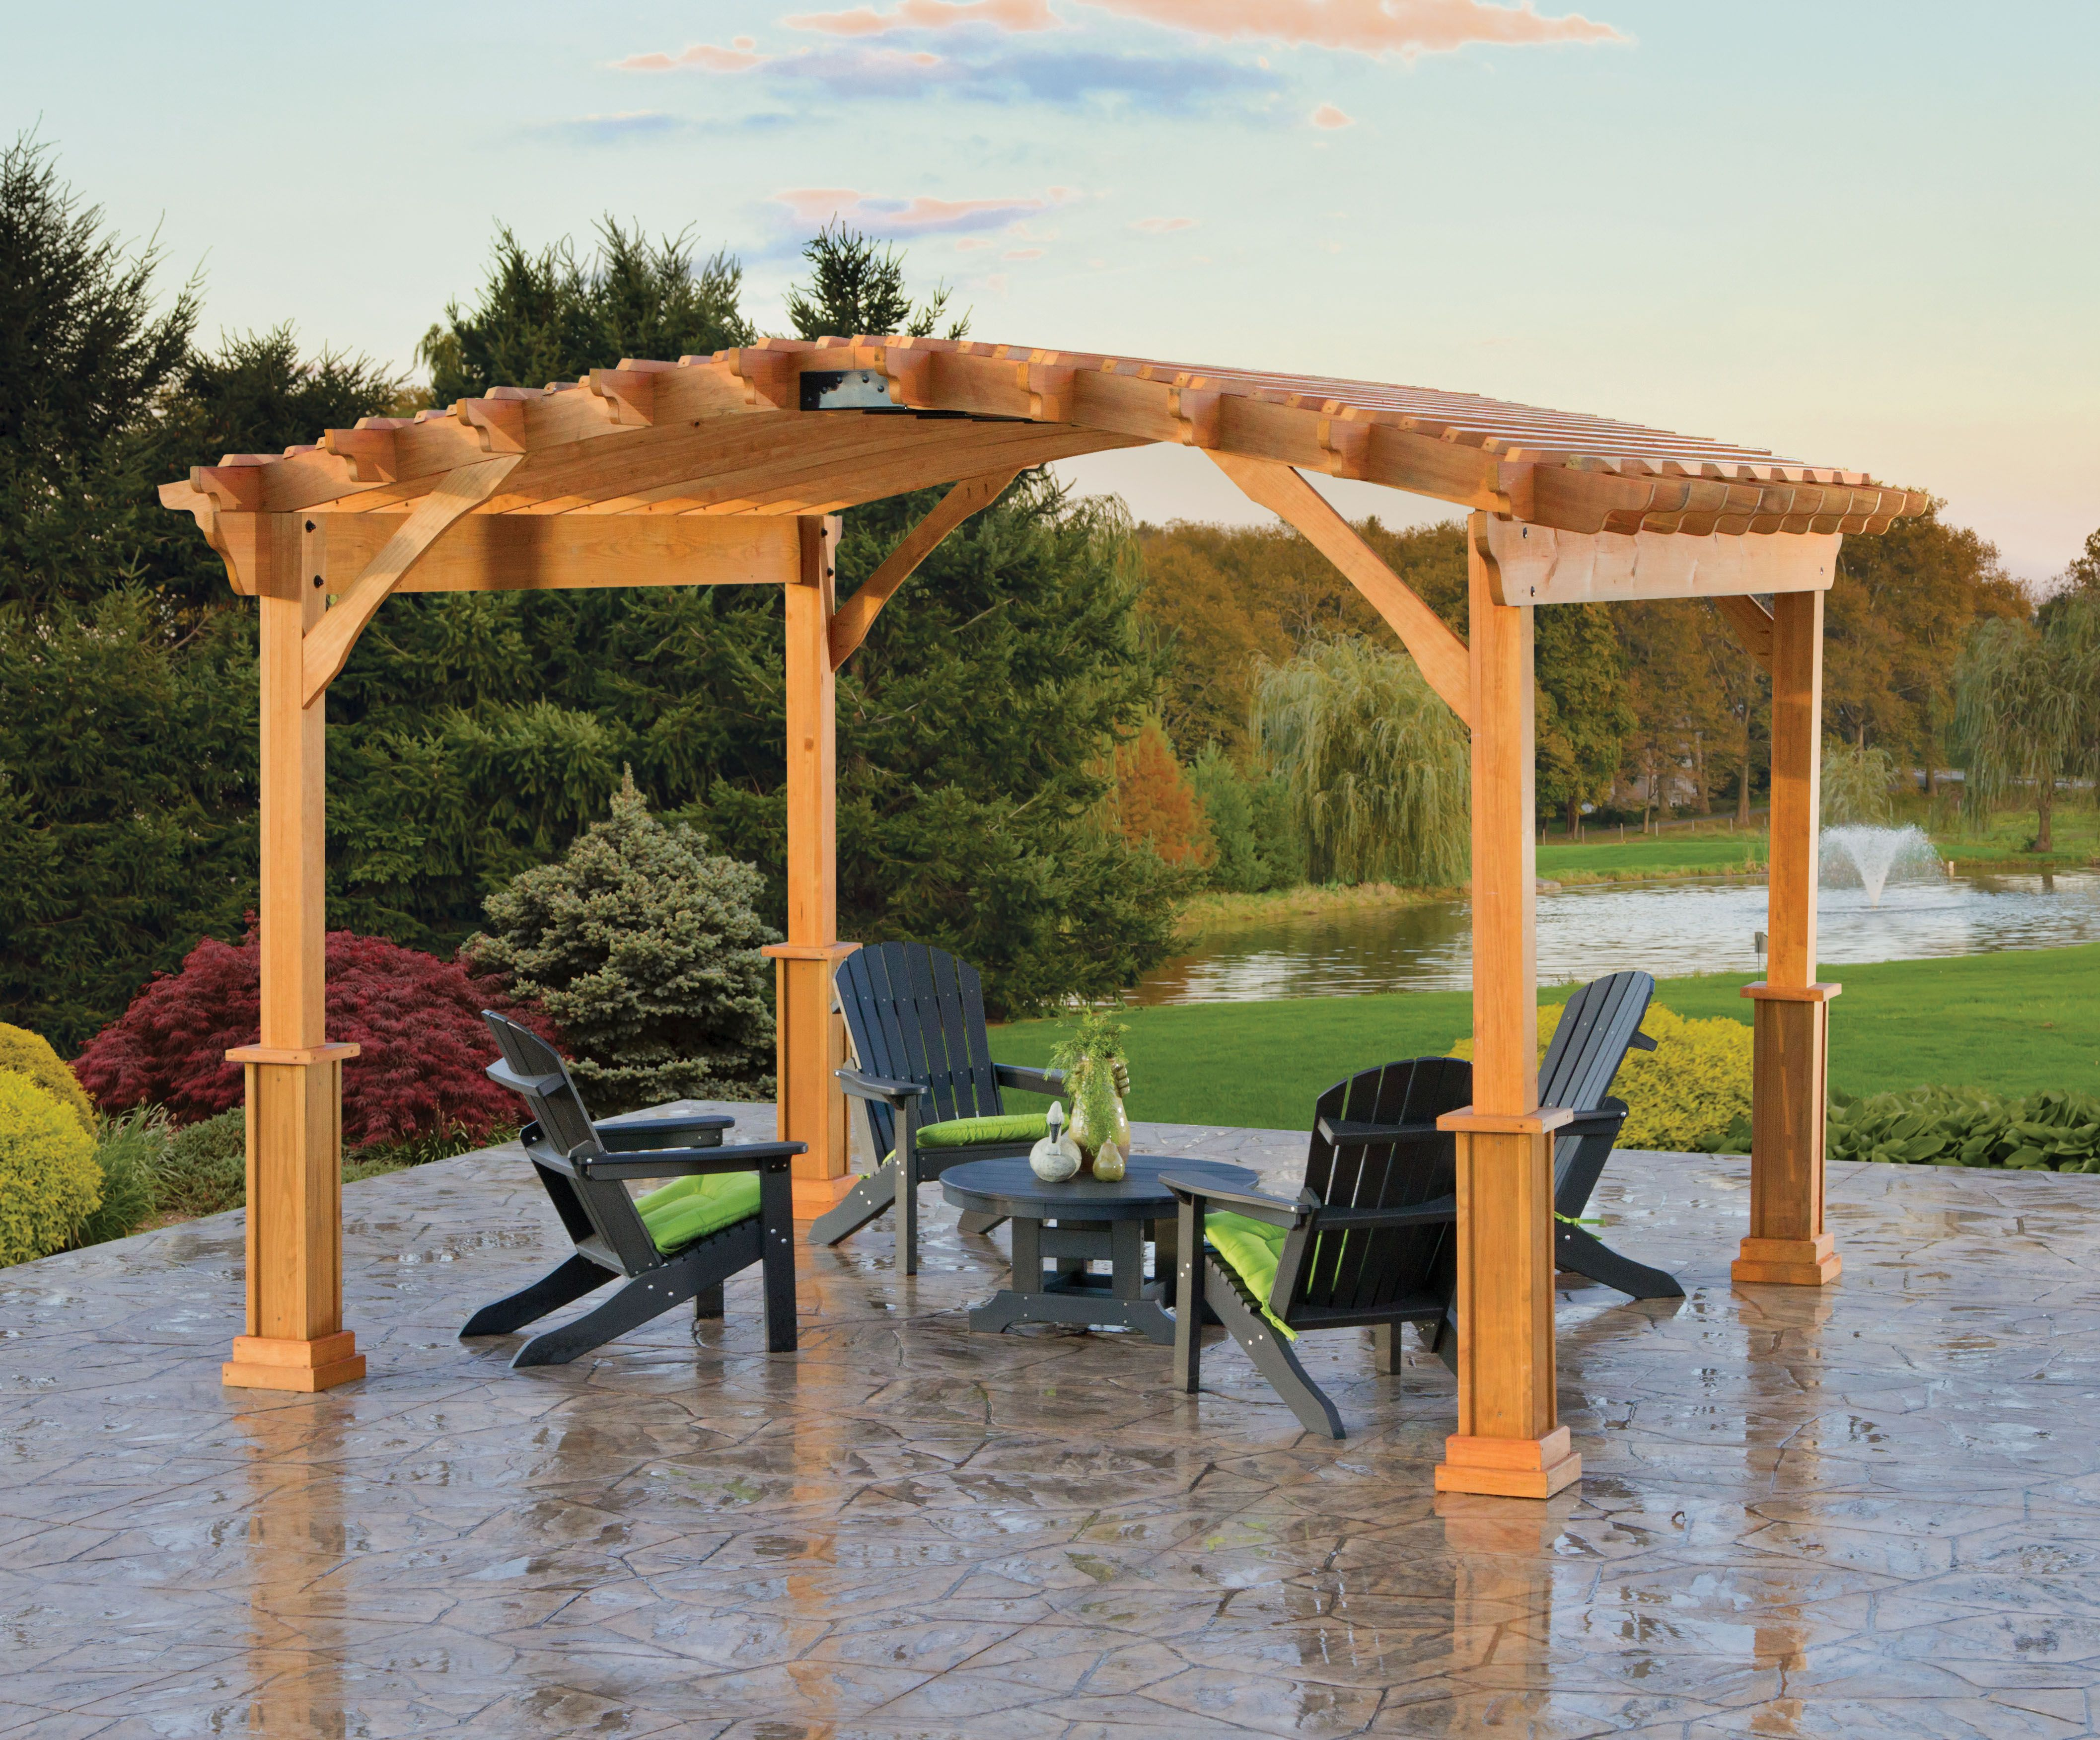 A Berlin Gardens Riviera Pergola In Treated Wood Adds Architectural Grander  To A Patio. #